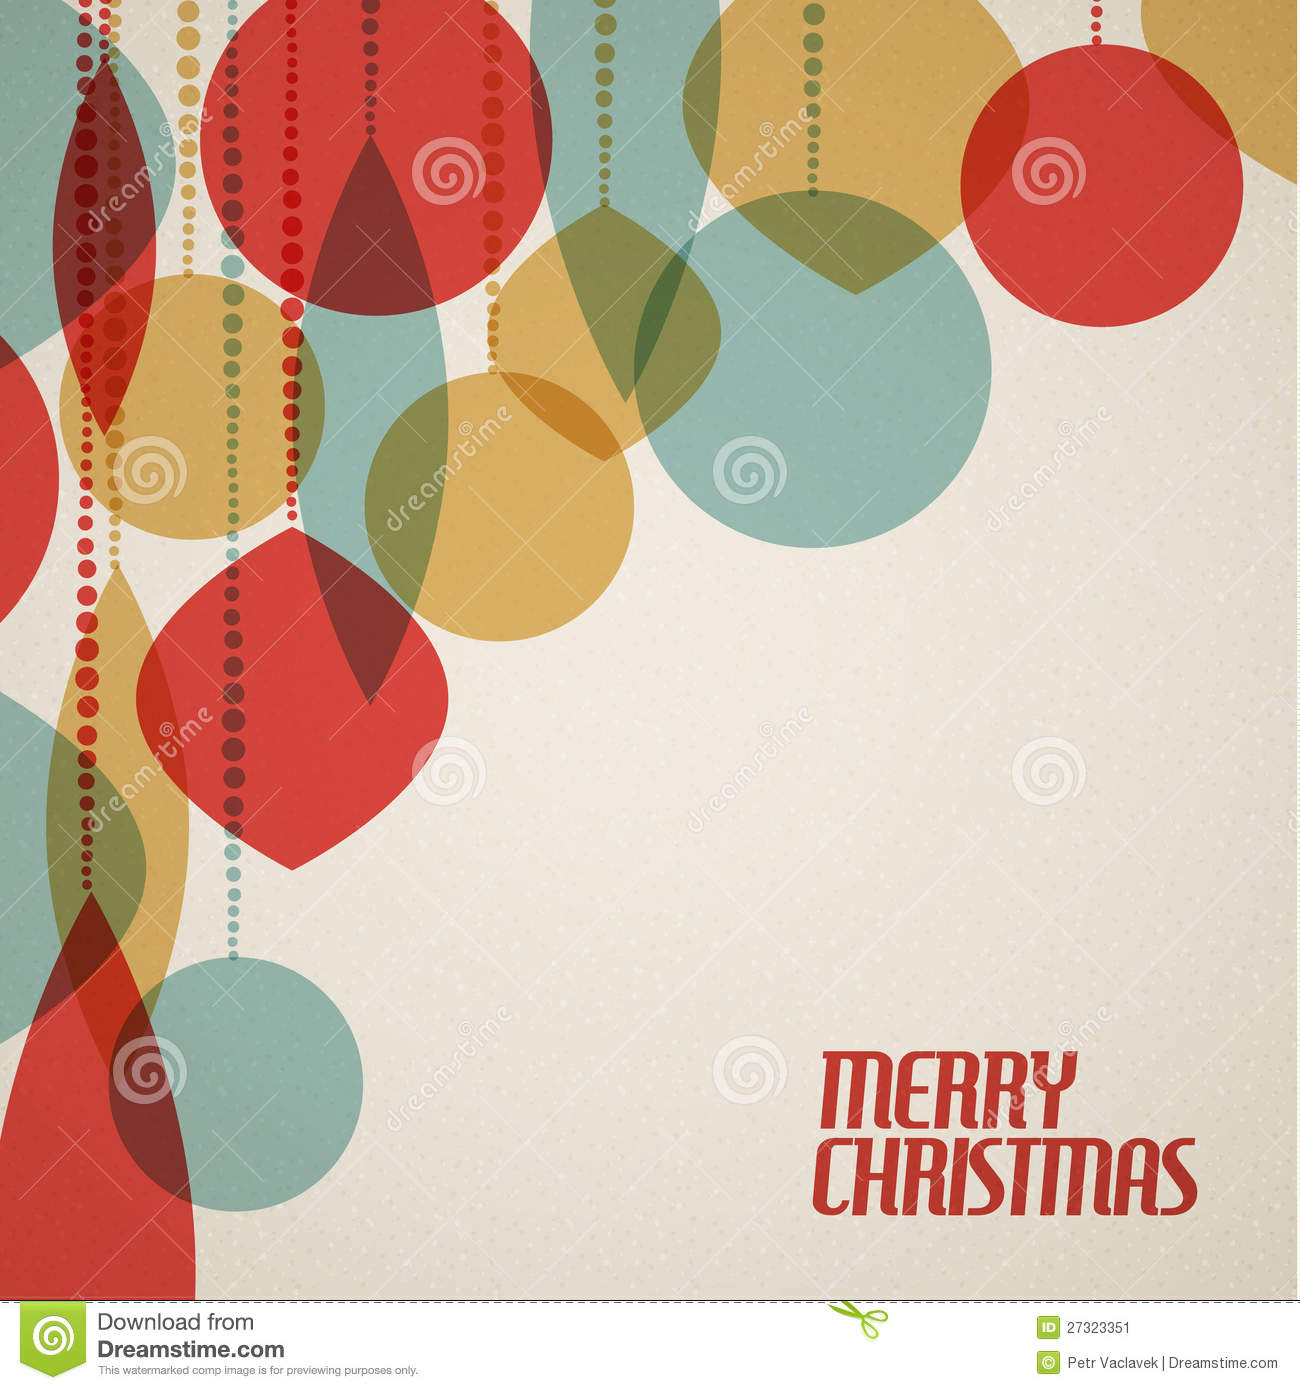 download retro christmas card with christmas decorations stock vector illustration of graphic decoration